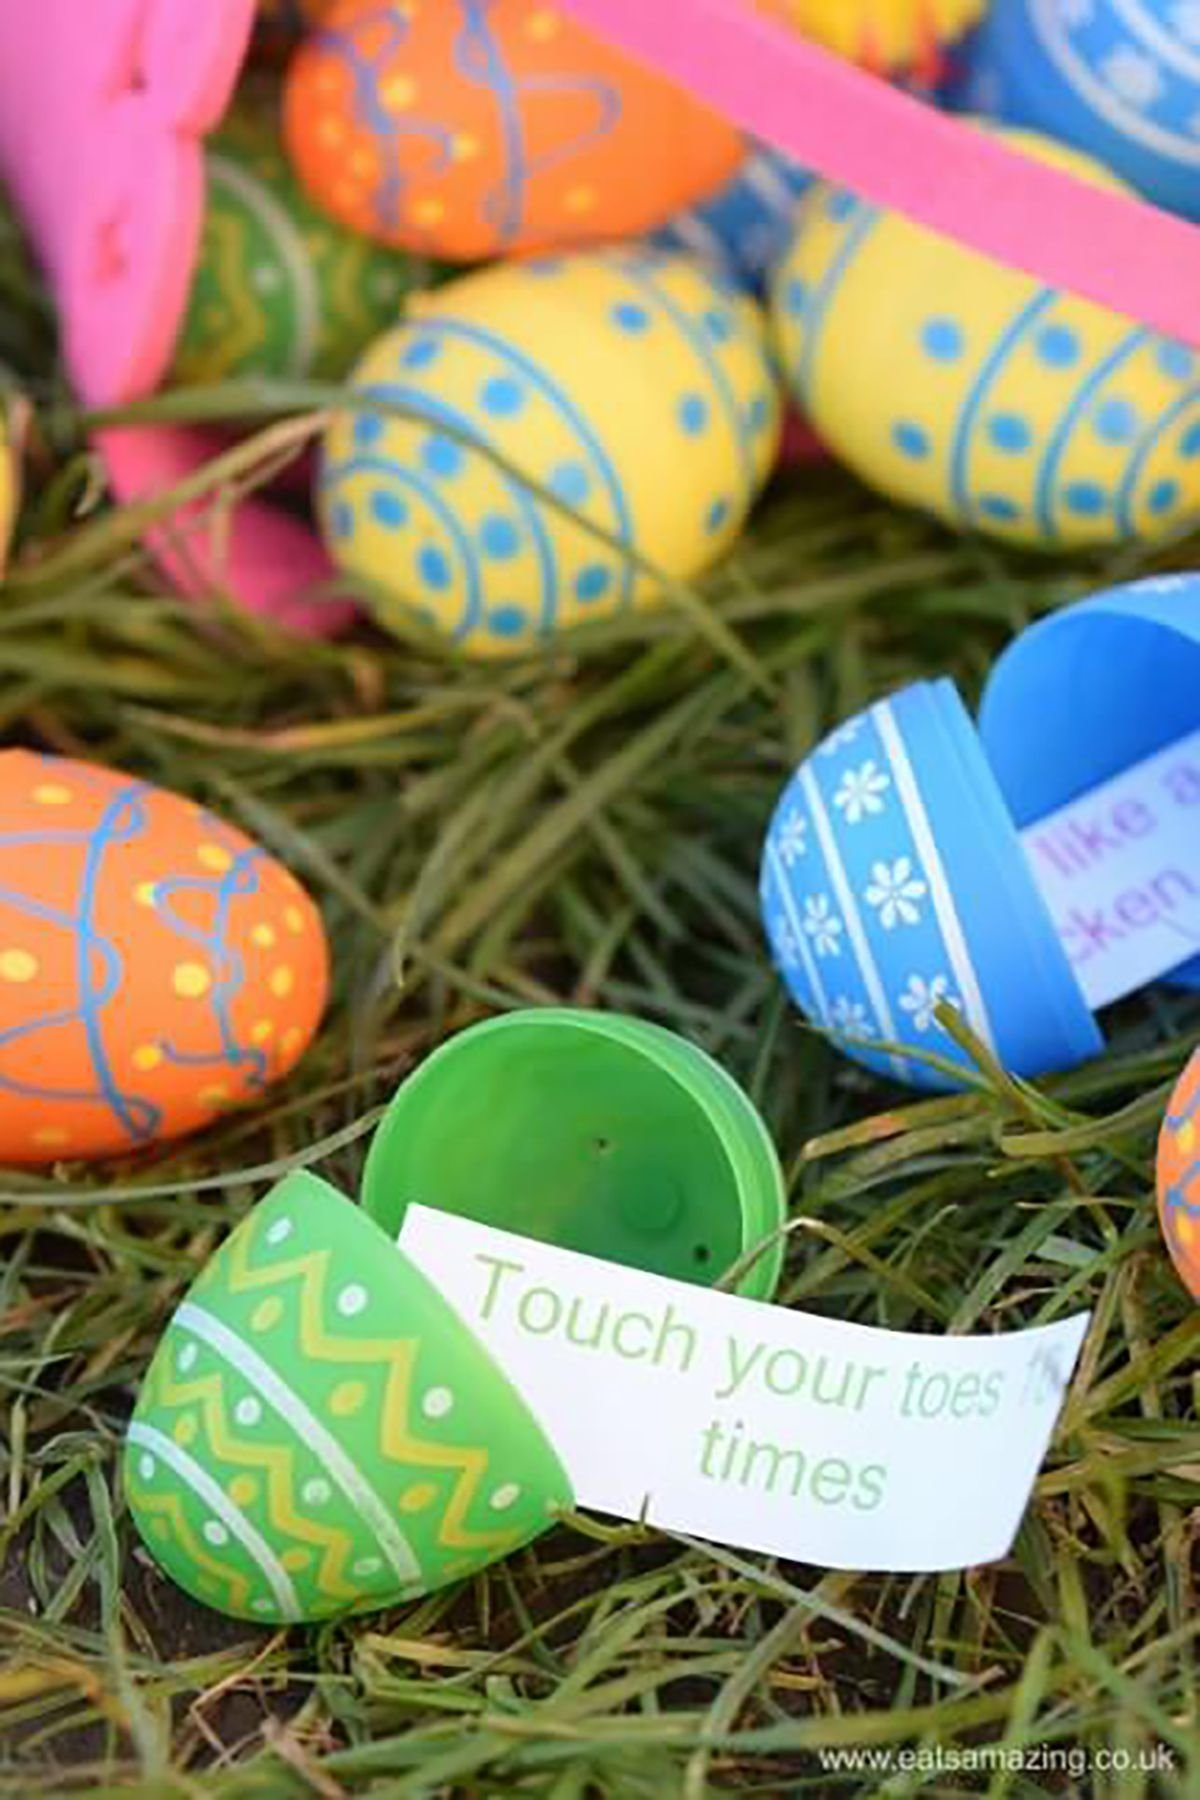 10 Pretty Ideas For Easter Egg Hunt 14 fun easter egg hunt ideas for kids unique easter egg hunt ideas 7 2021